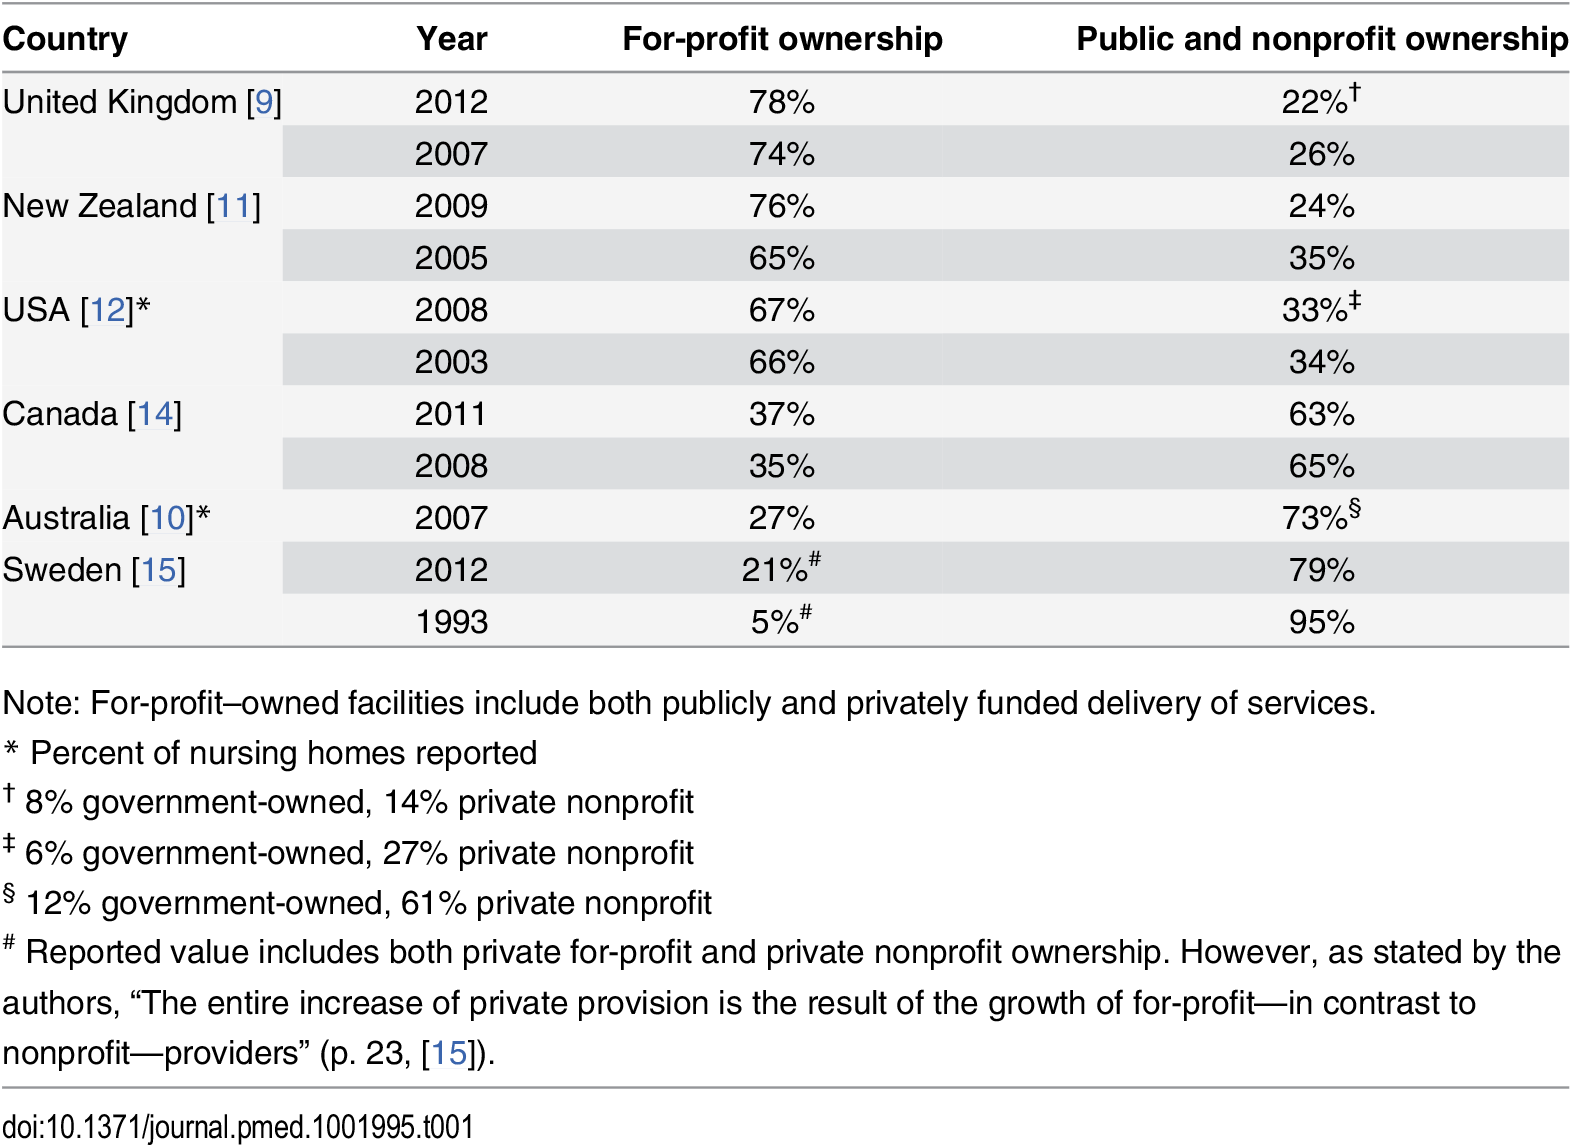 Percent of nursing home beds, by for-profit and nonprofit ownership